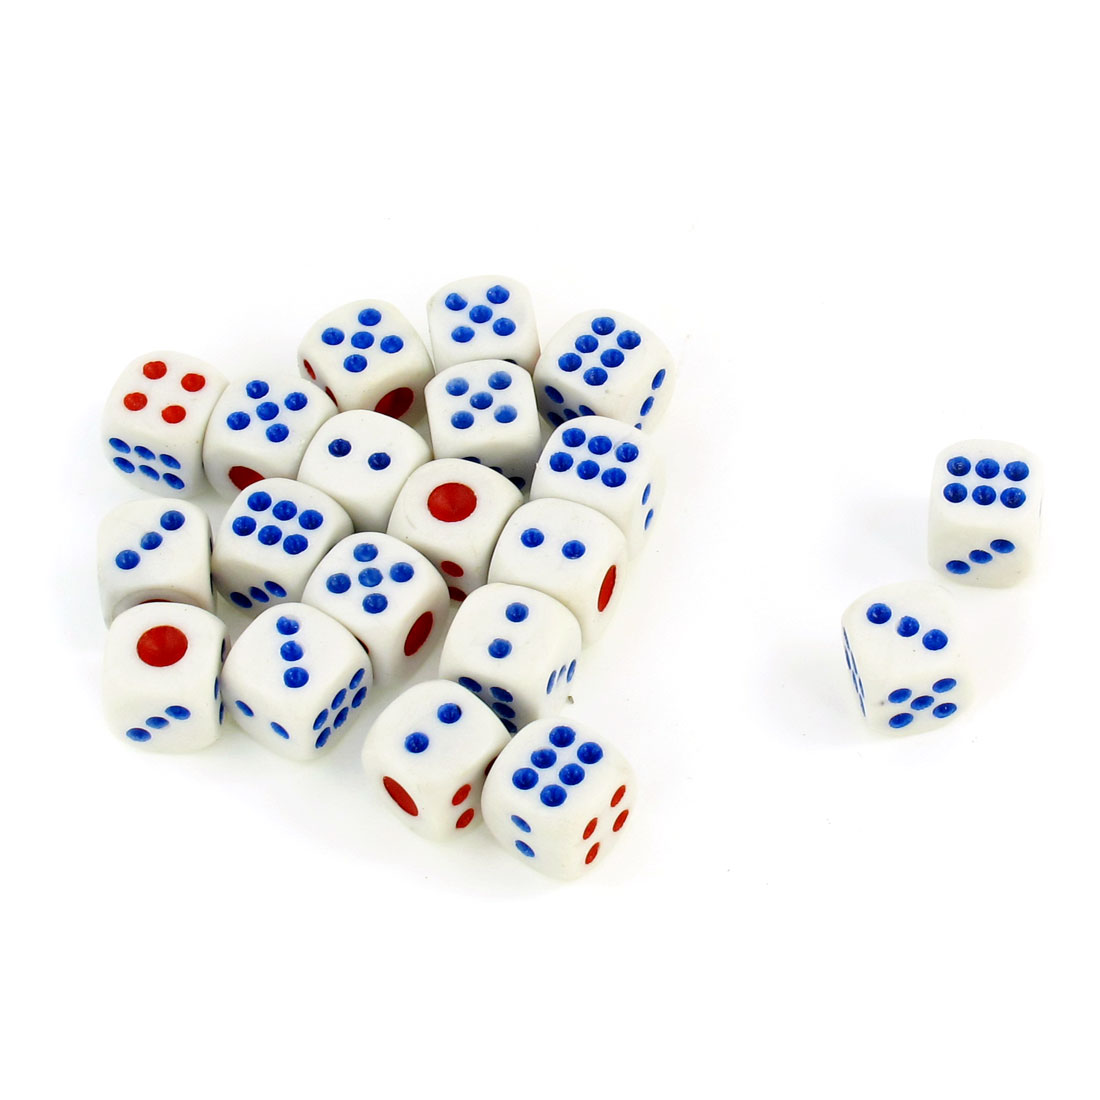 Party Club Entertainment Palstic Guessing Game Six Sided Dices Toy White 20 Pcs